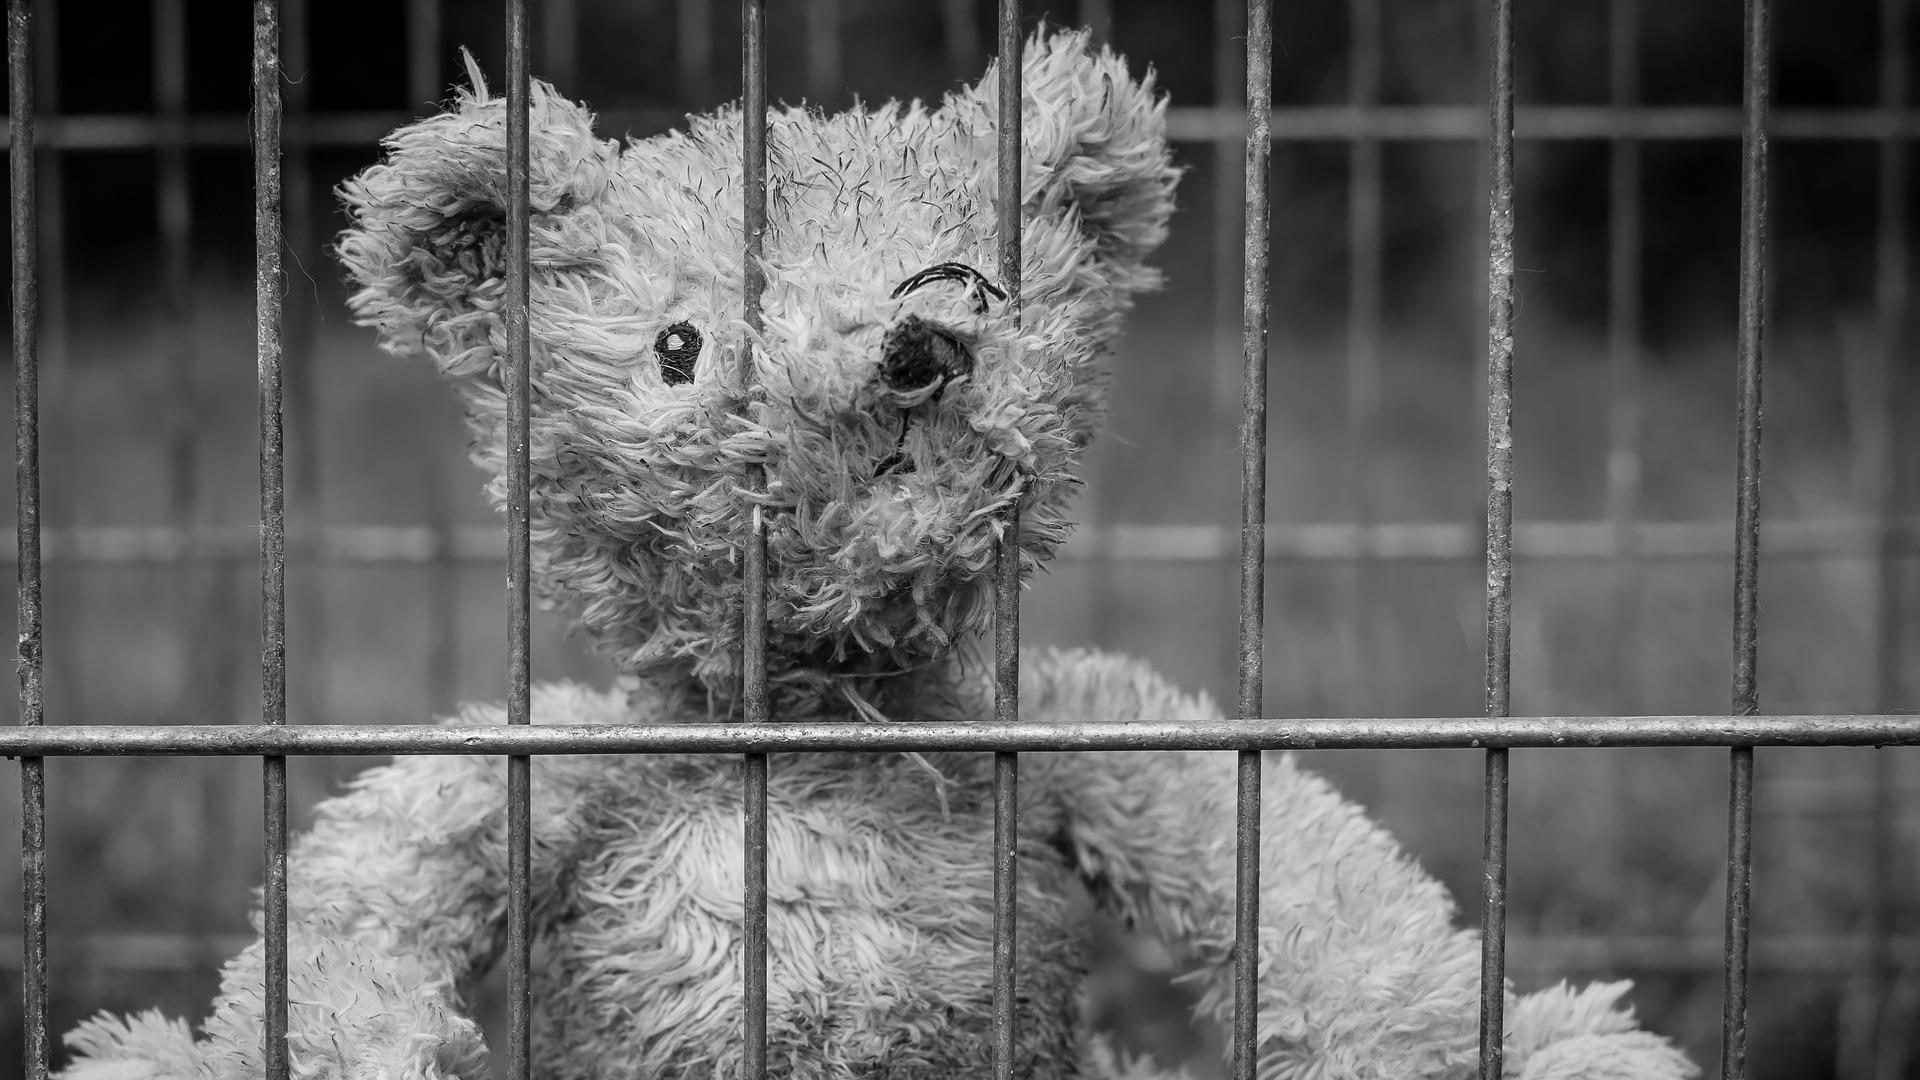 Teddy Prison Robert Pastryk From Pixabay